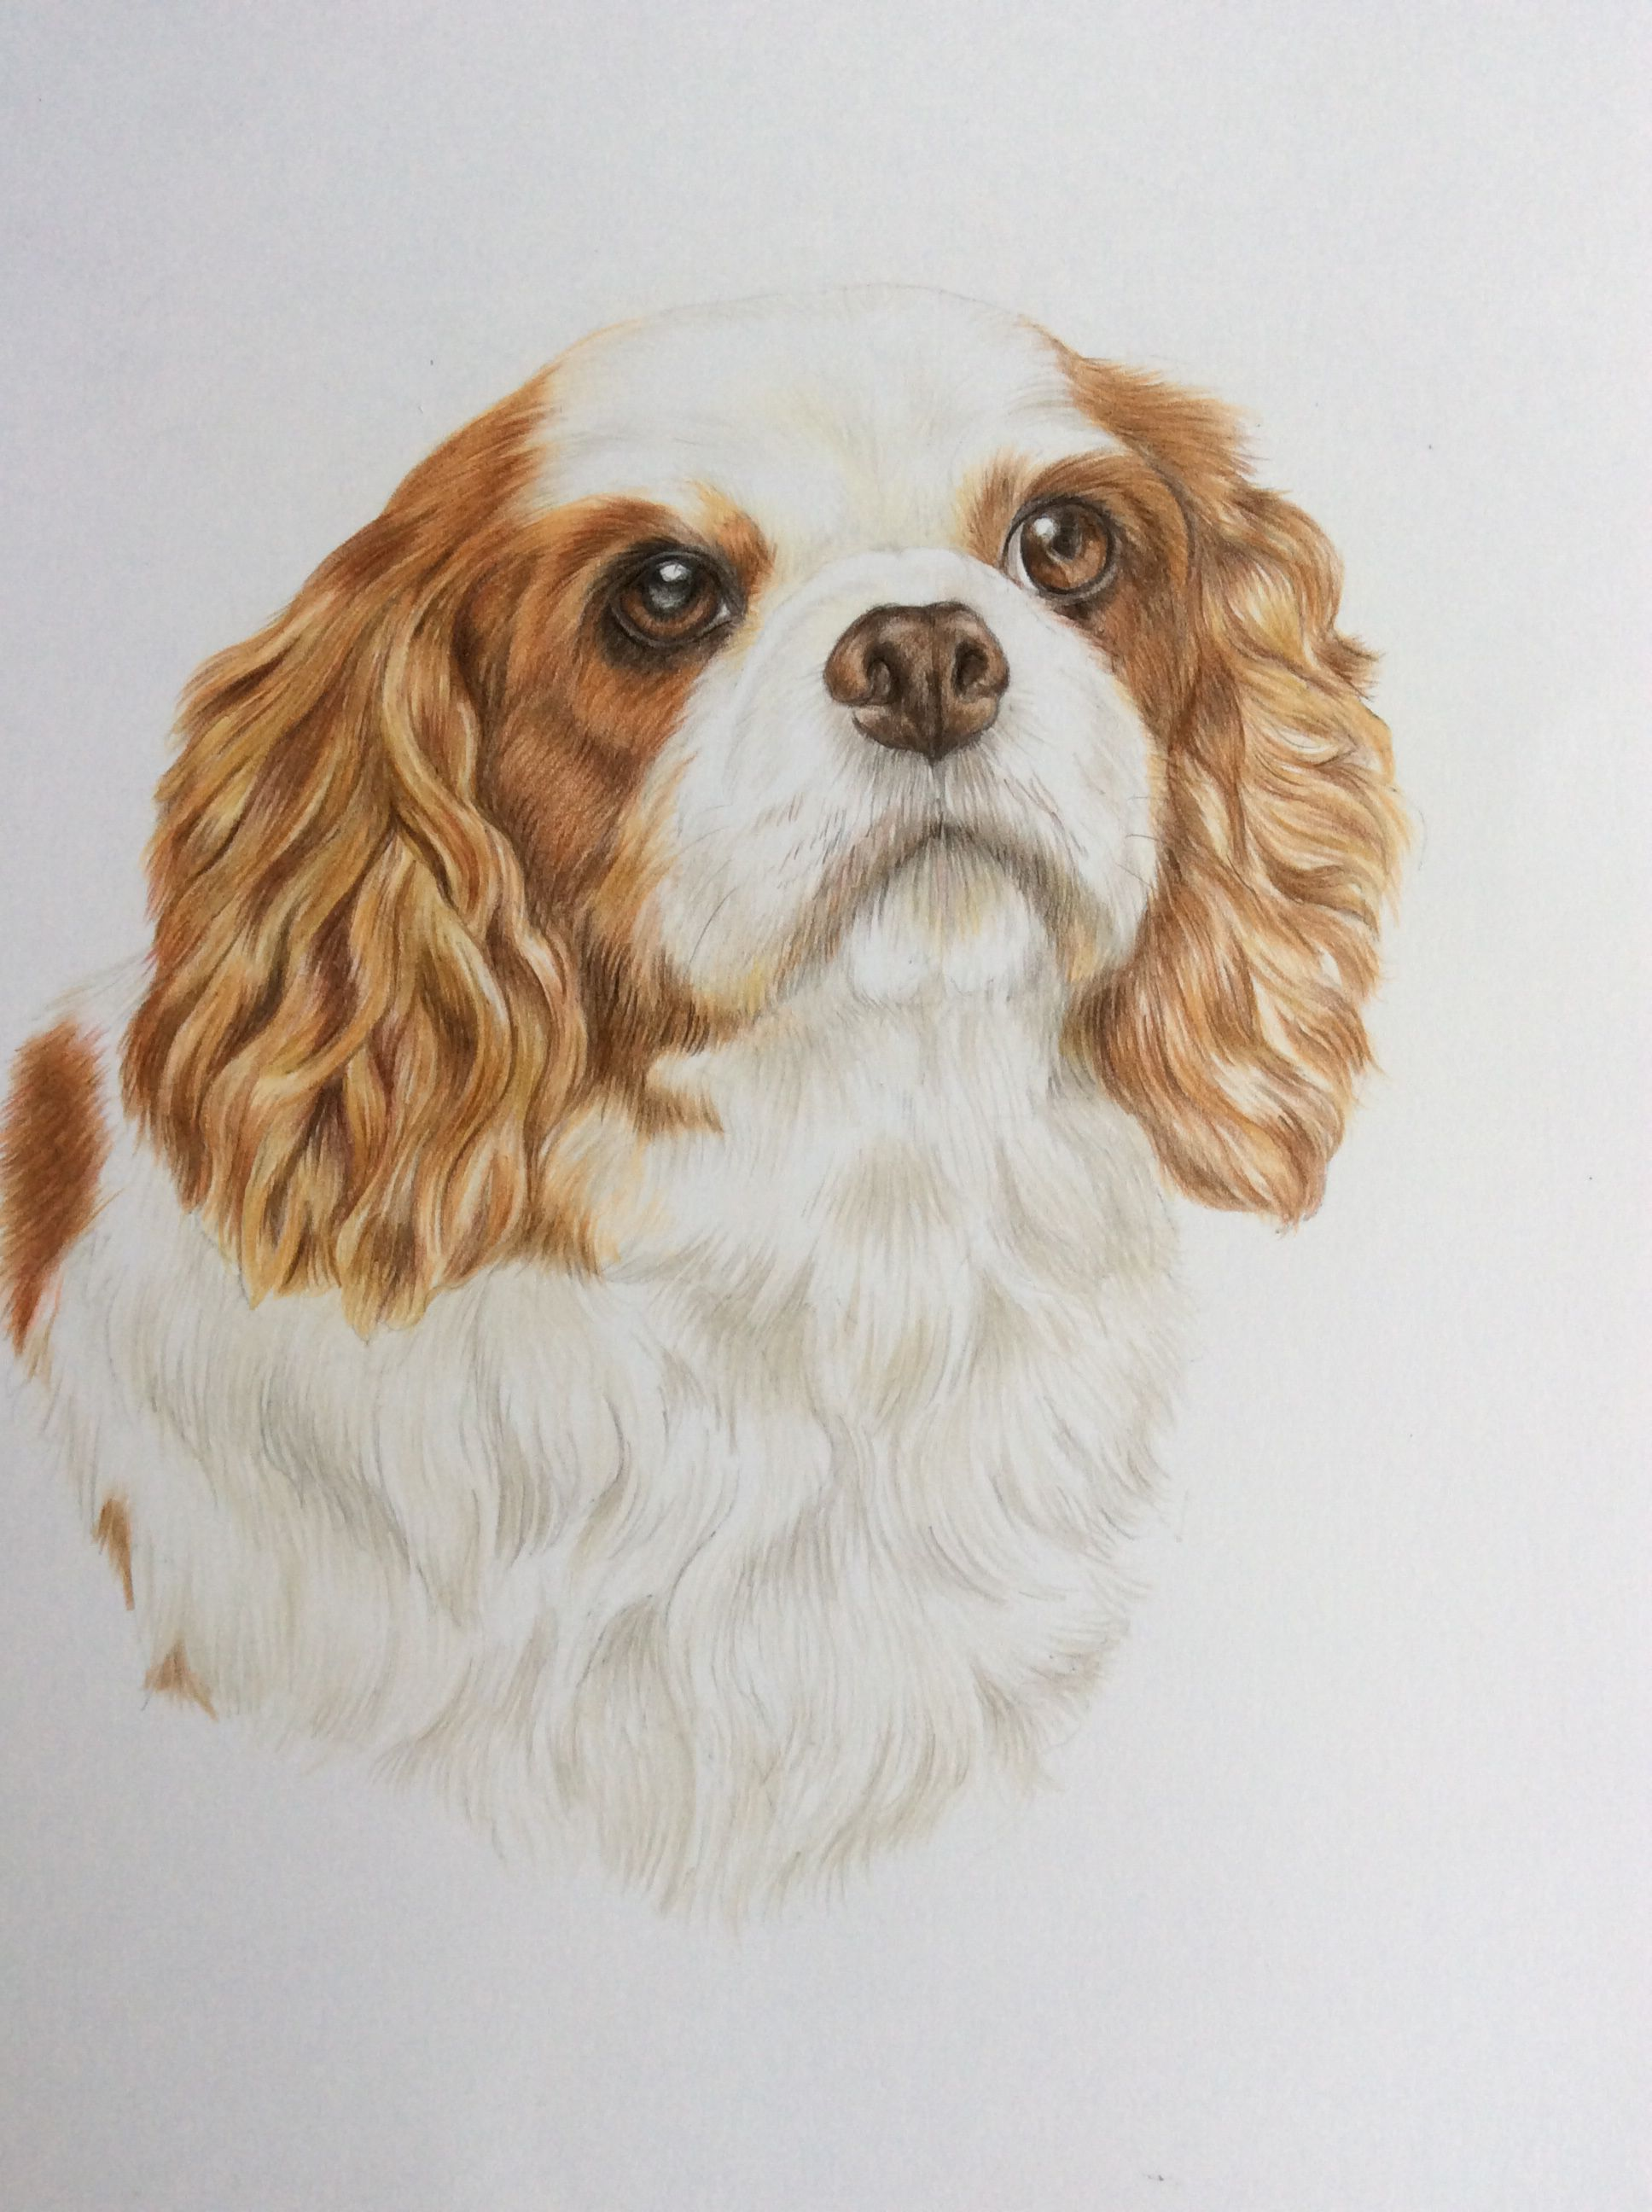 Coloured pencil drawing by Tracy Brock